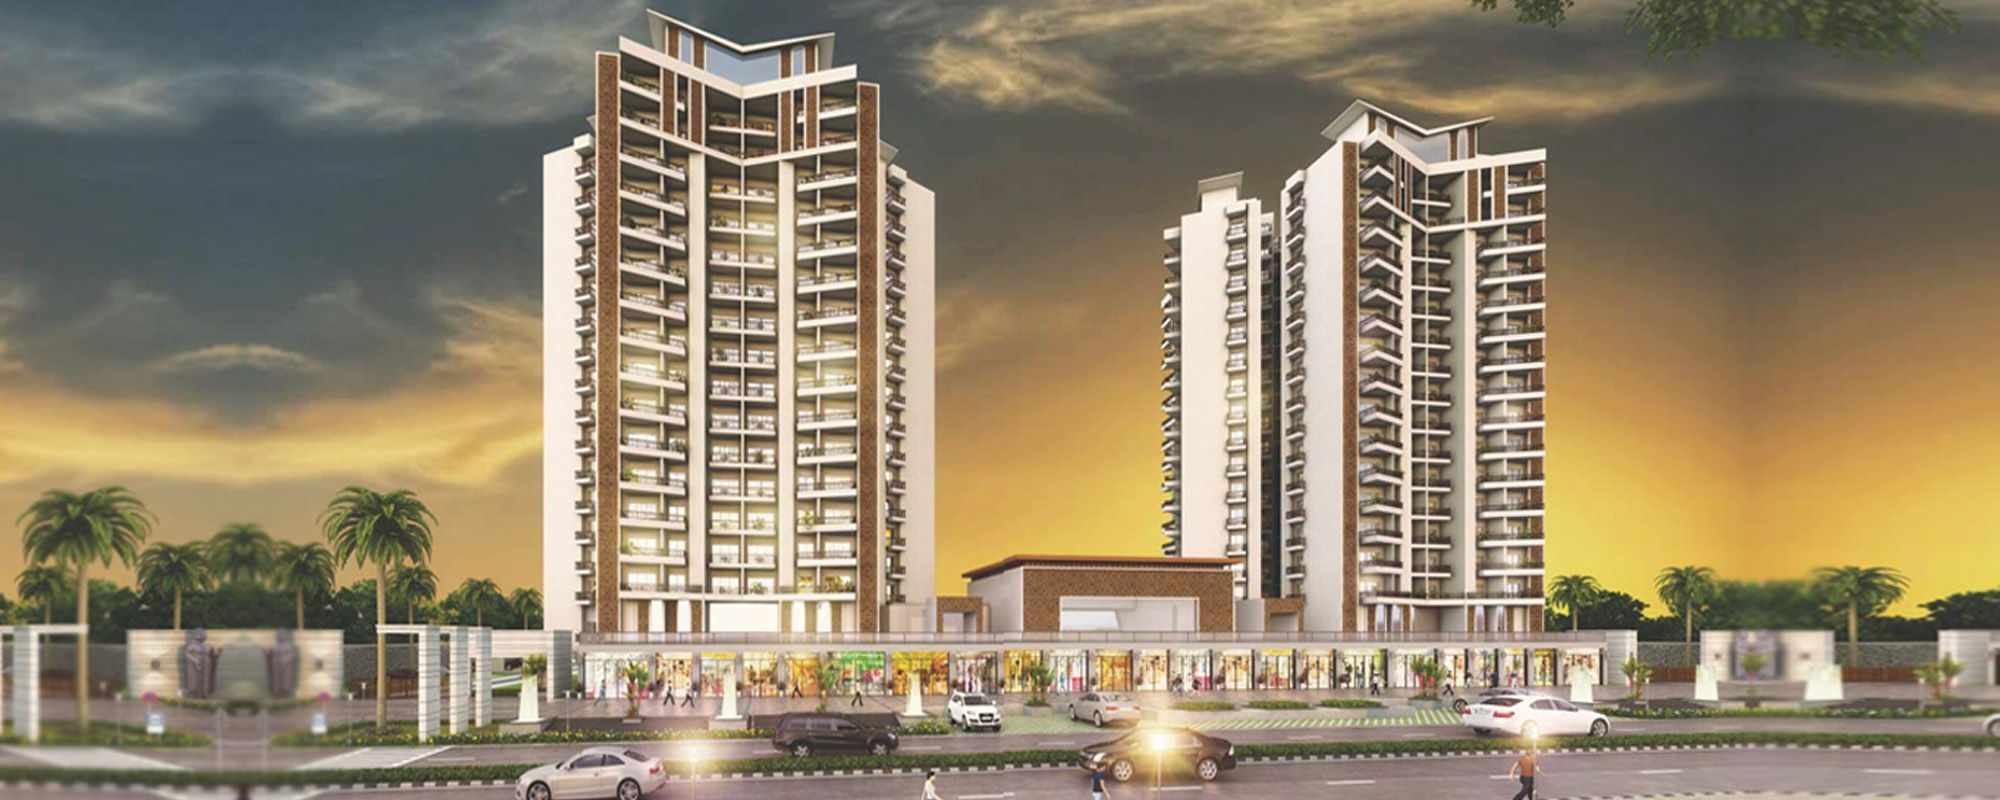 Ace Divino Noida Extension Ace Divino Price List Ace Group In 2020 Wellness Design Cool Apartments Site Visit